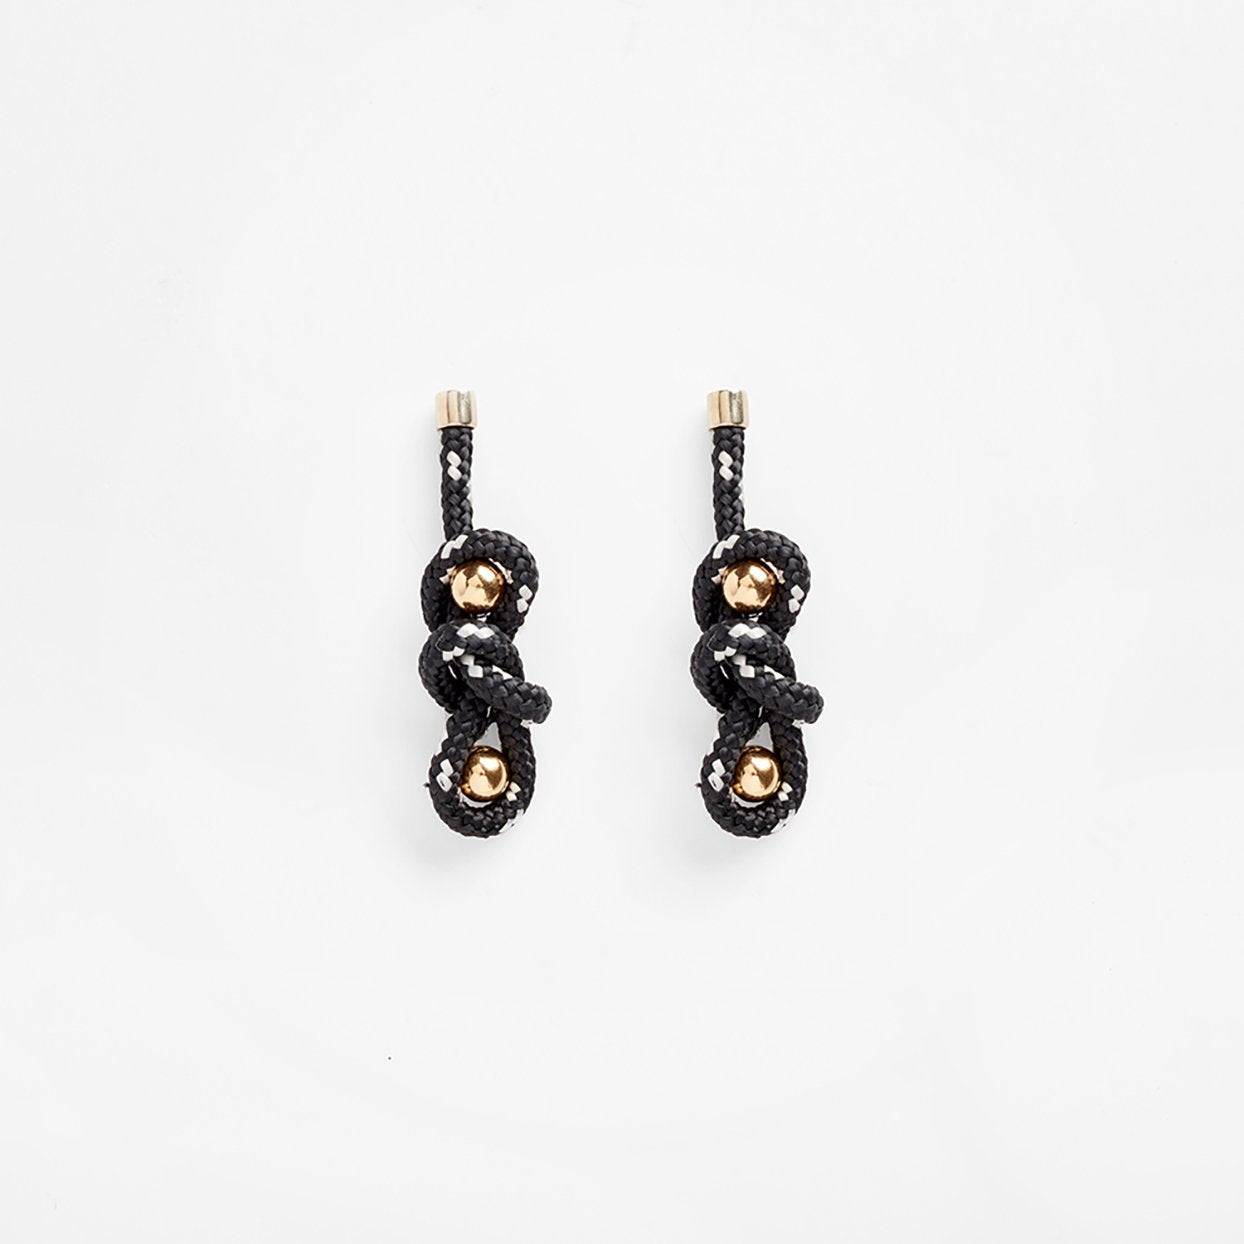 Meru Black/White Earrings by Pichulik